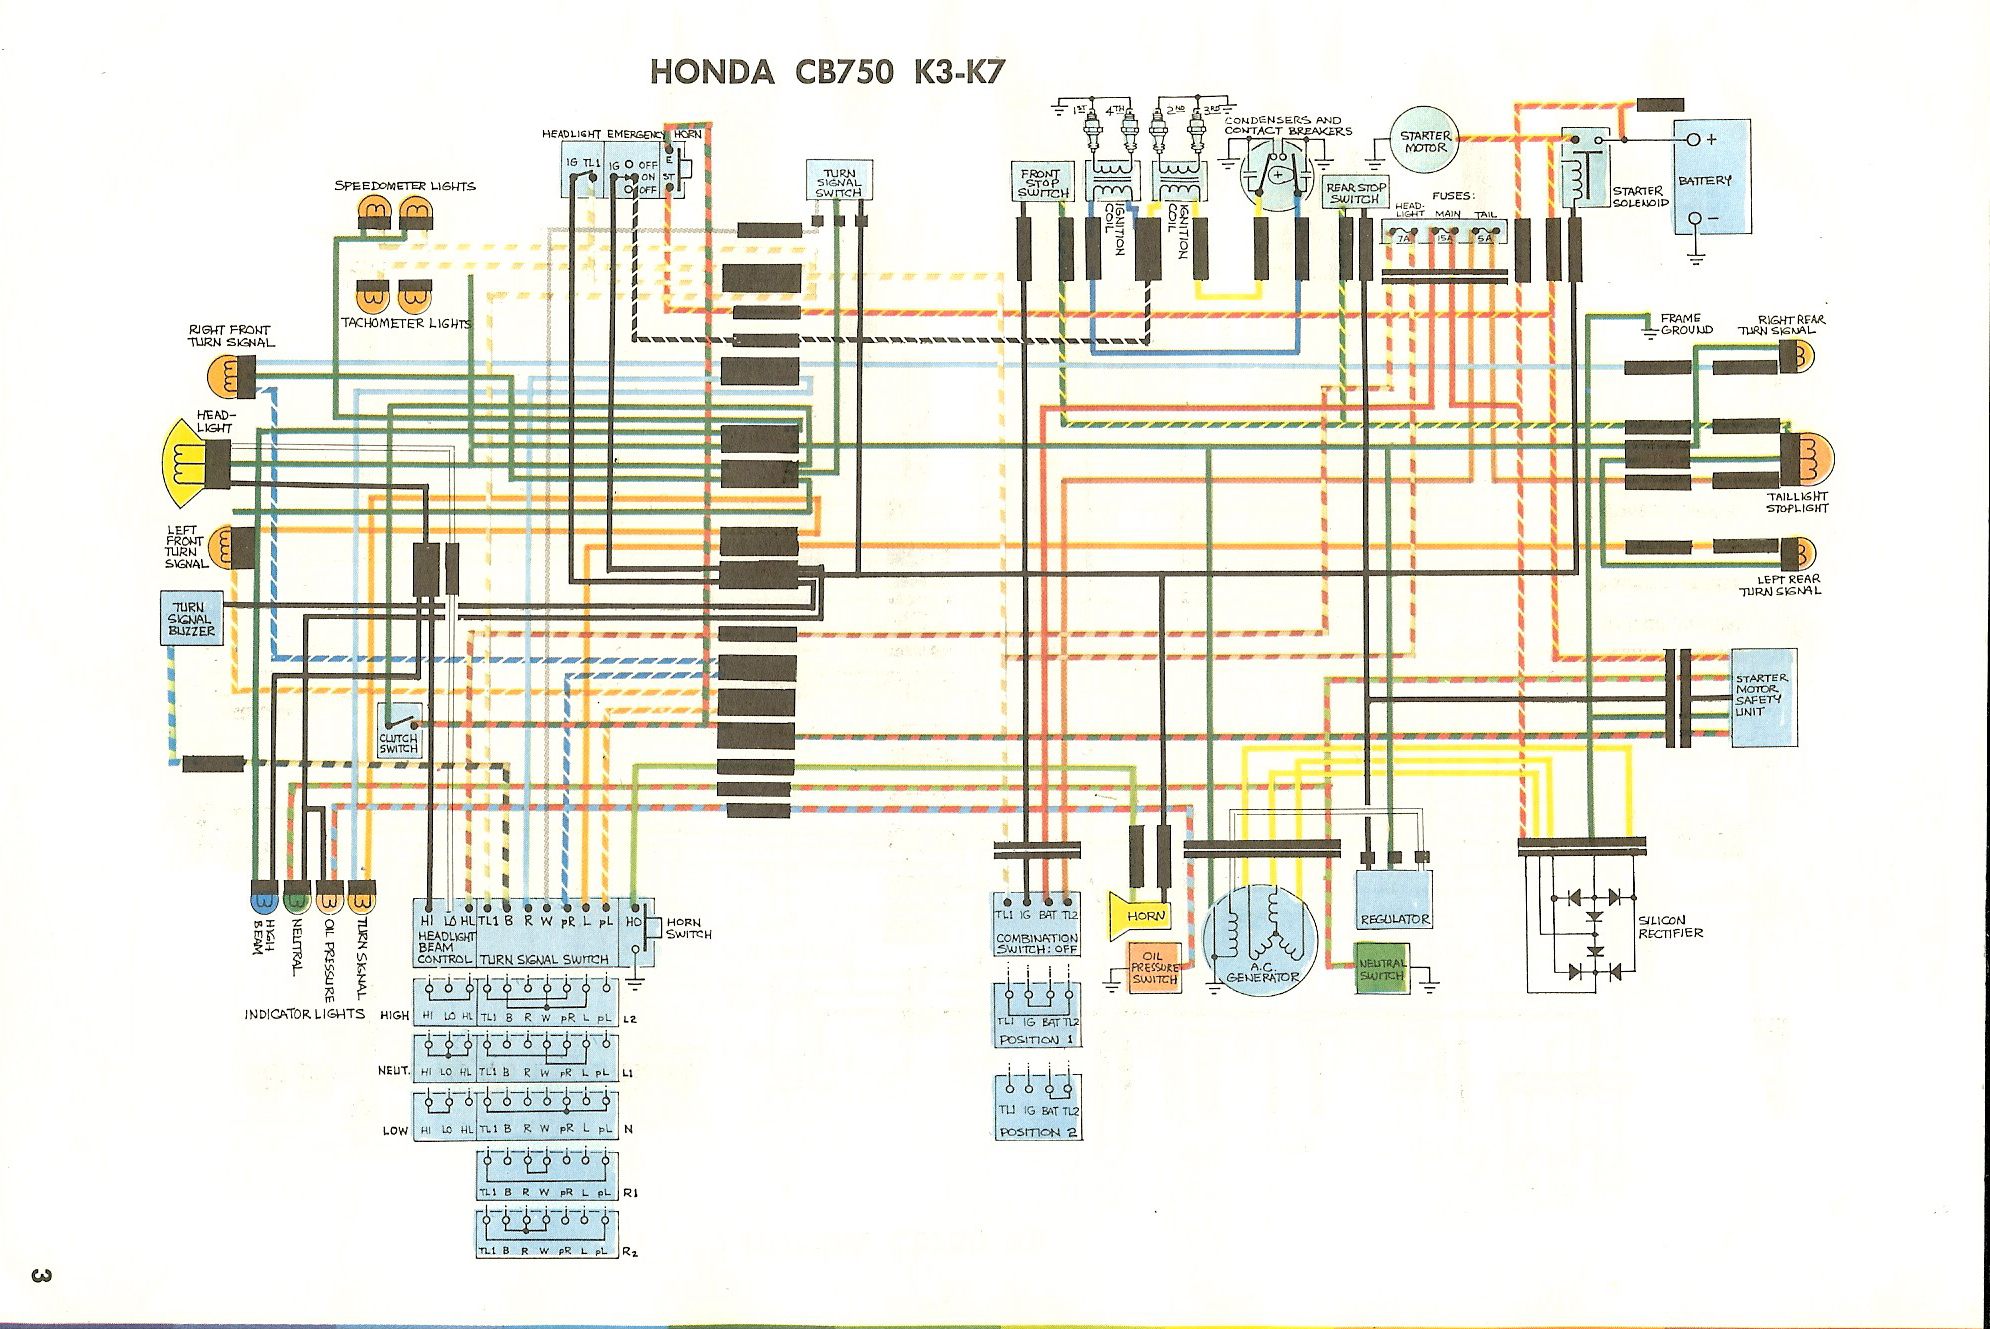 CB750K  C Wiring Diagram on 1984 chevy s10 wiring diagram, 1985 chevy pickup c10 305 engine wiring diagram, 65 c10 underhood wiring diagram, 1972 chevy starter wiring diagram, 1969 chevy 1500 ac wiring diagram, 64 c10 cab wiring diagram, 82 chevy pickup engine wiring diagram, 1966 chevy c10 engine wiring diagram,